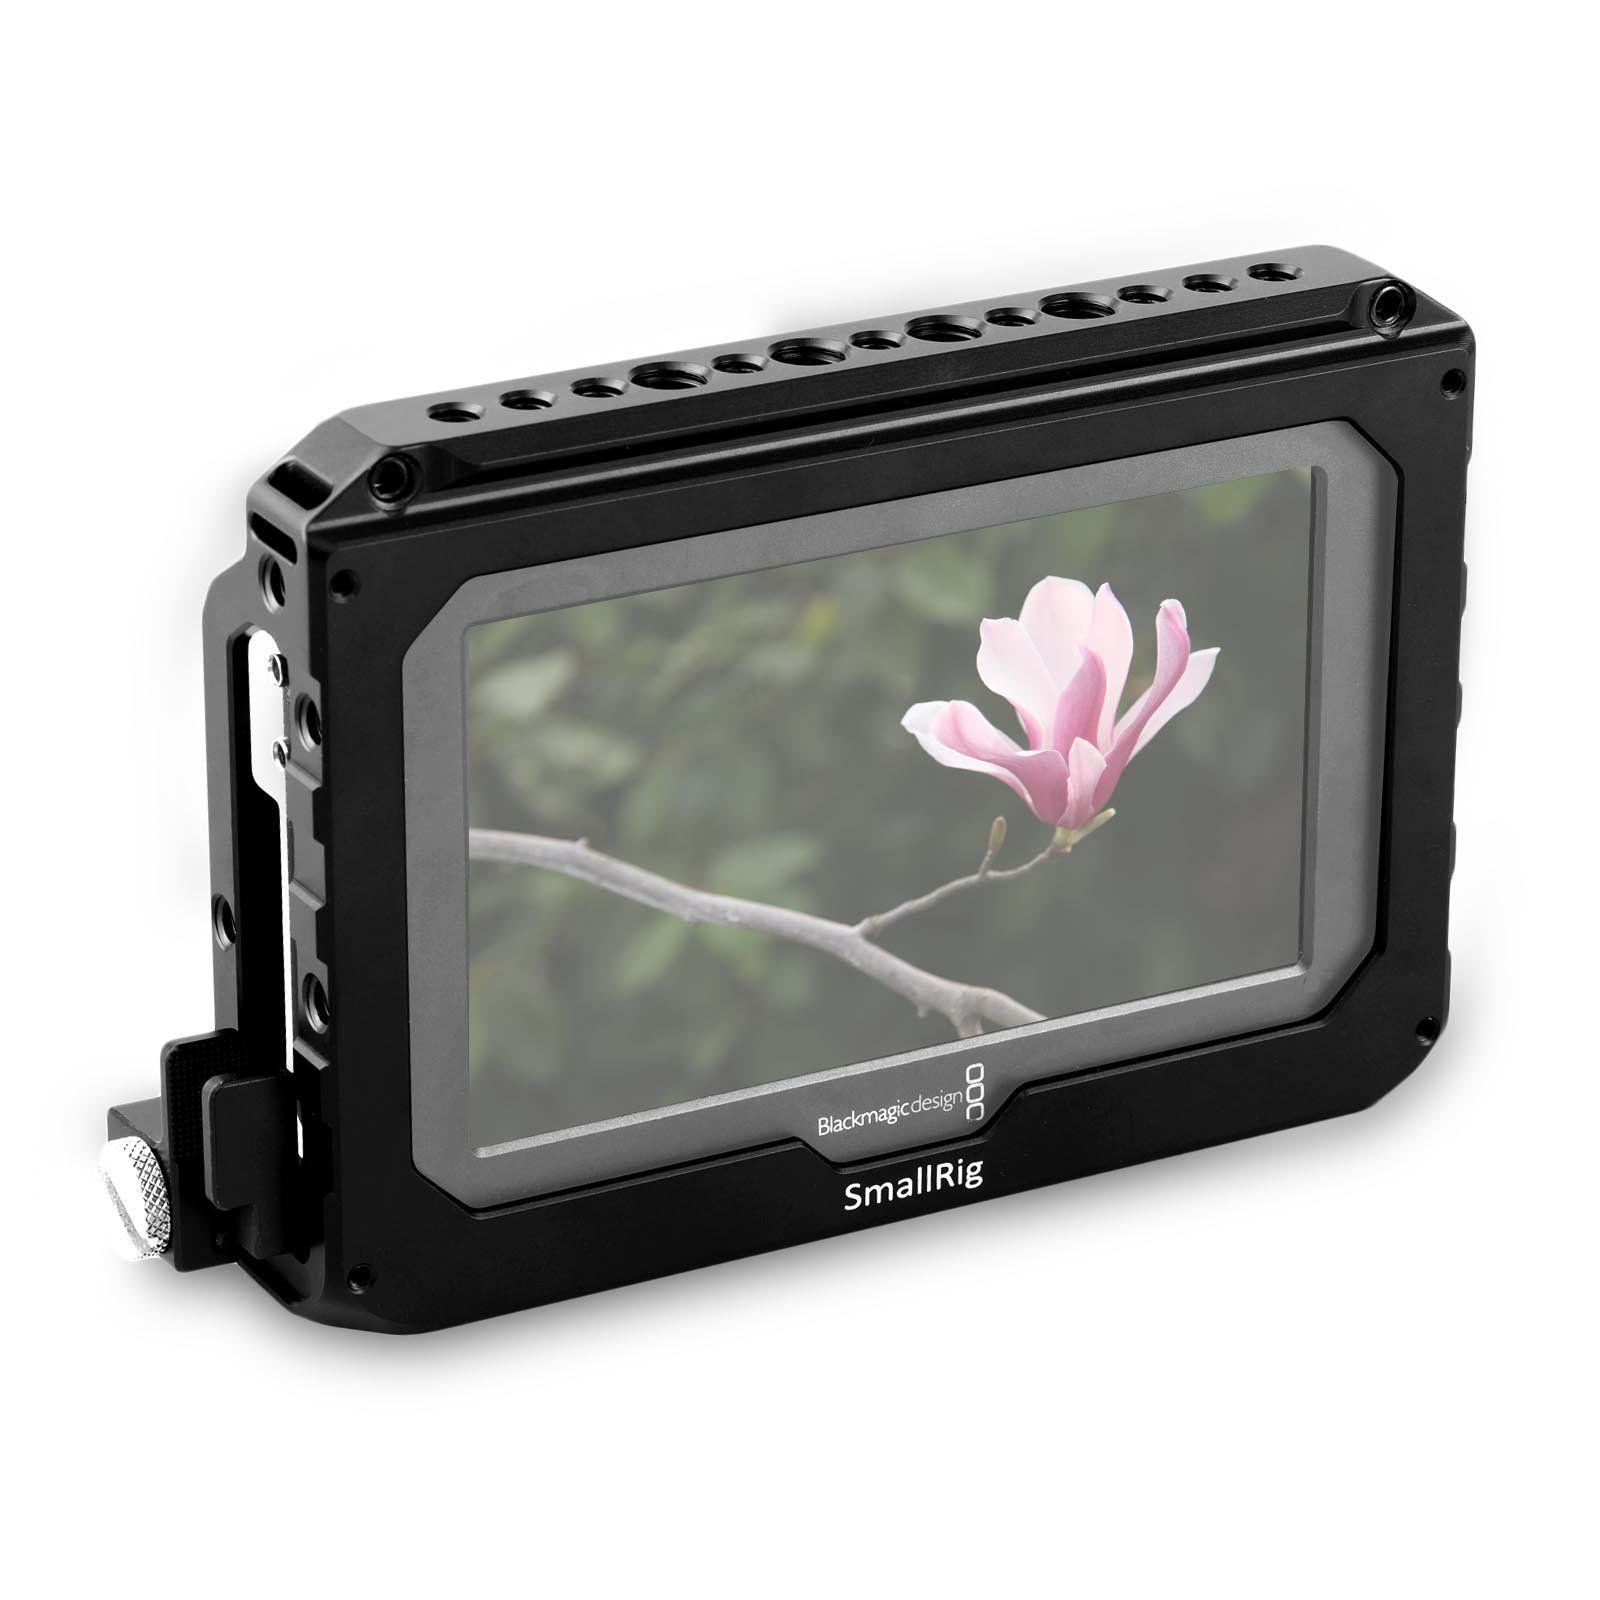 Smallrig 1726 5 inch Monitor Cage with NATO Rail and HDMI...